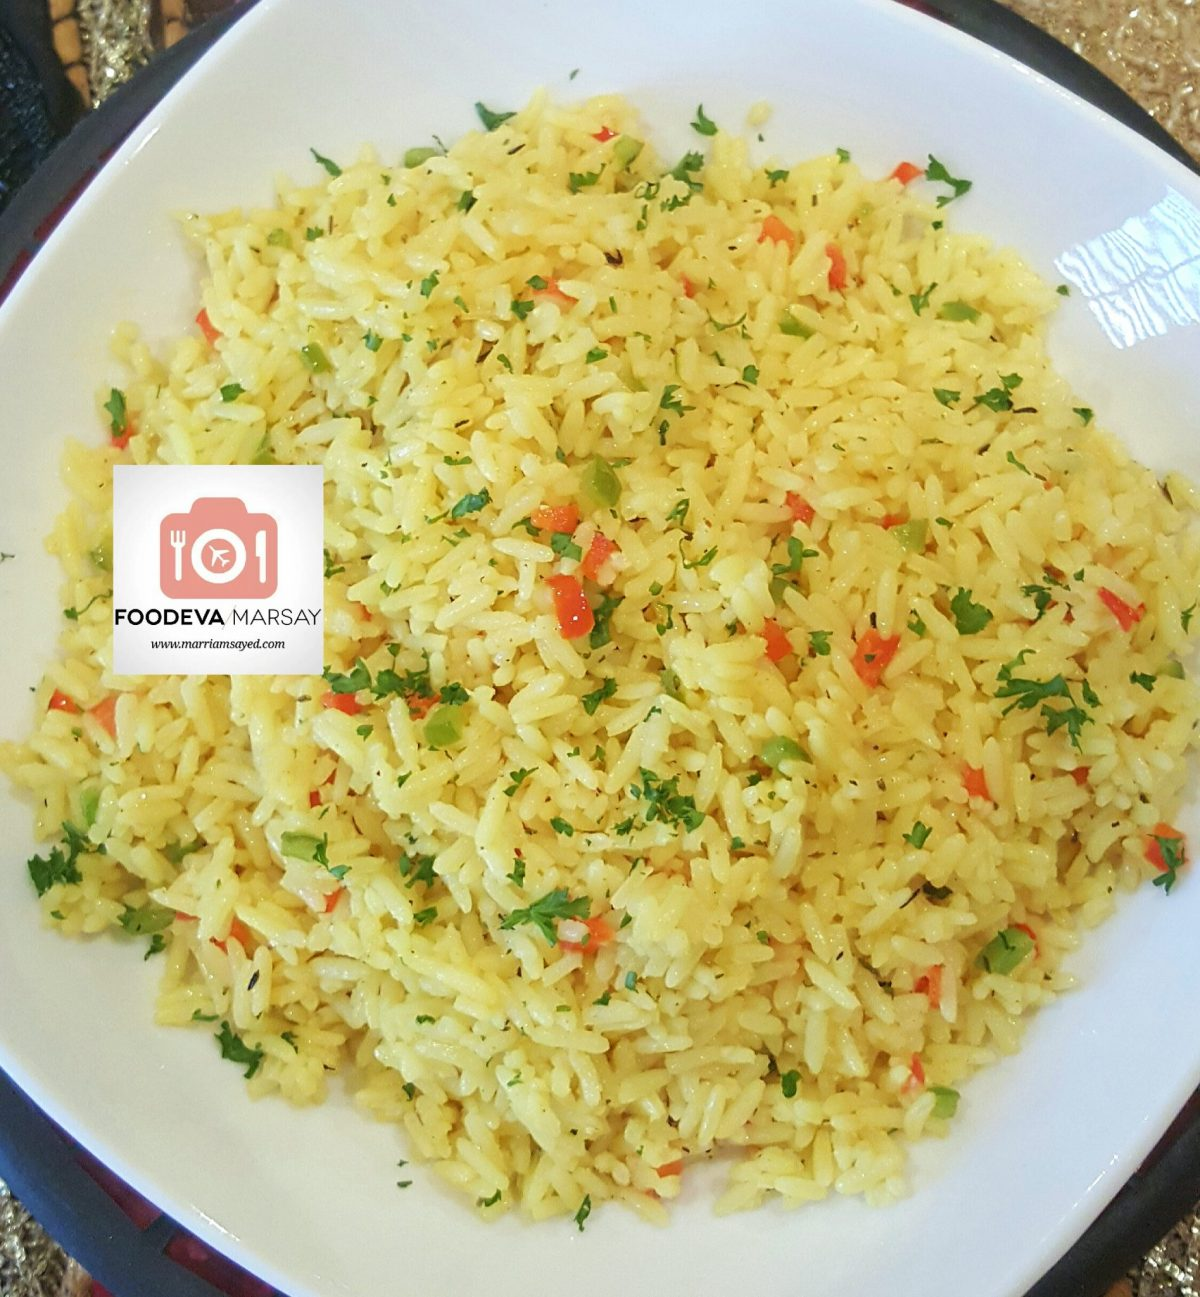 savoury-rice-with-peppers4.jpg?fit=1200%2C1297